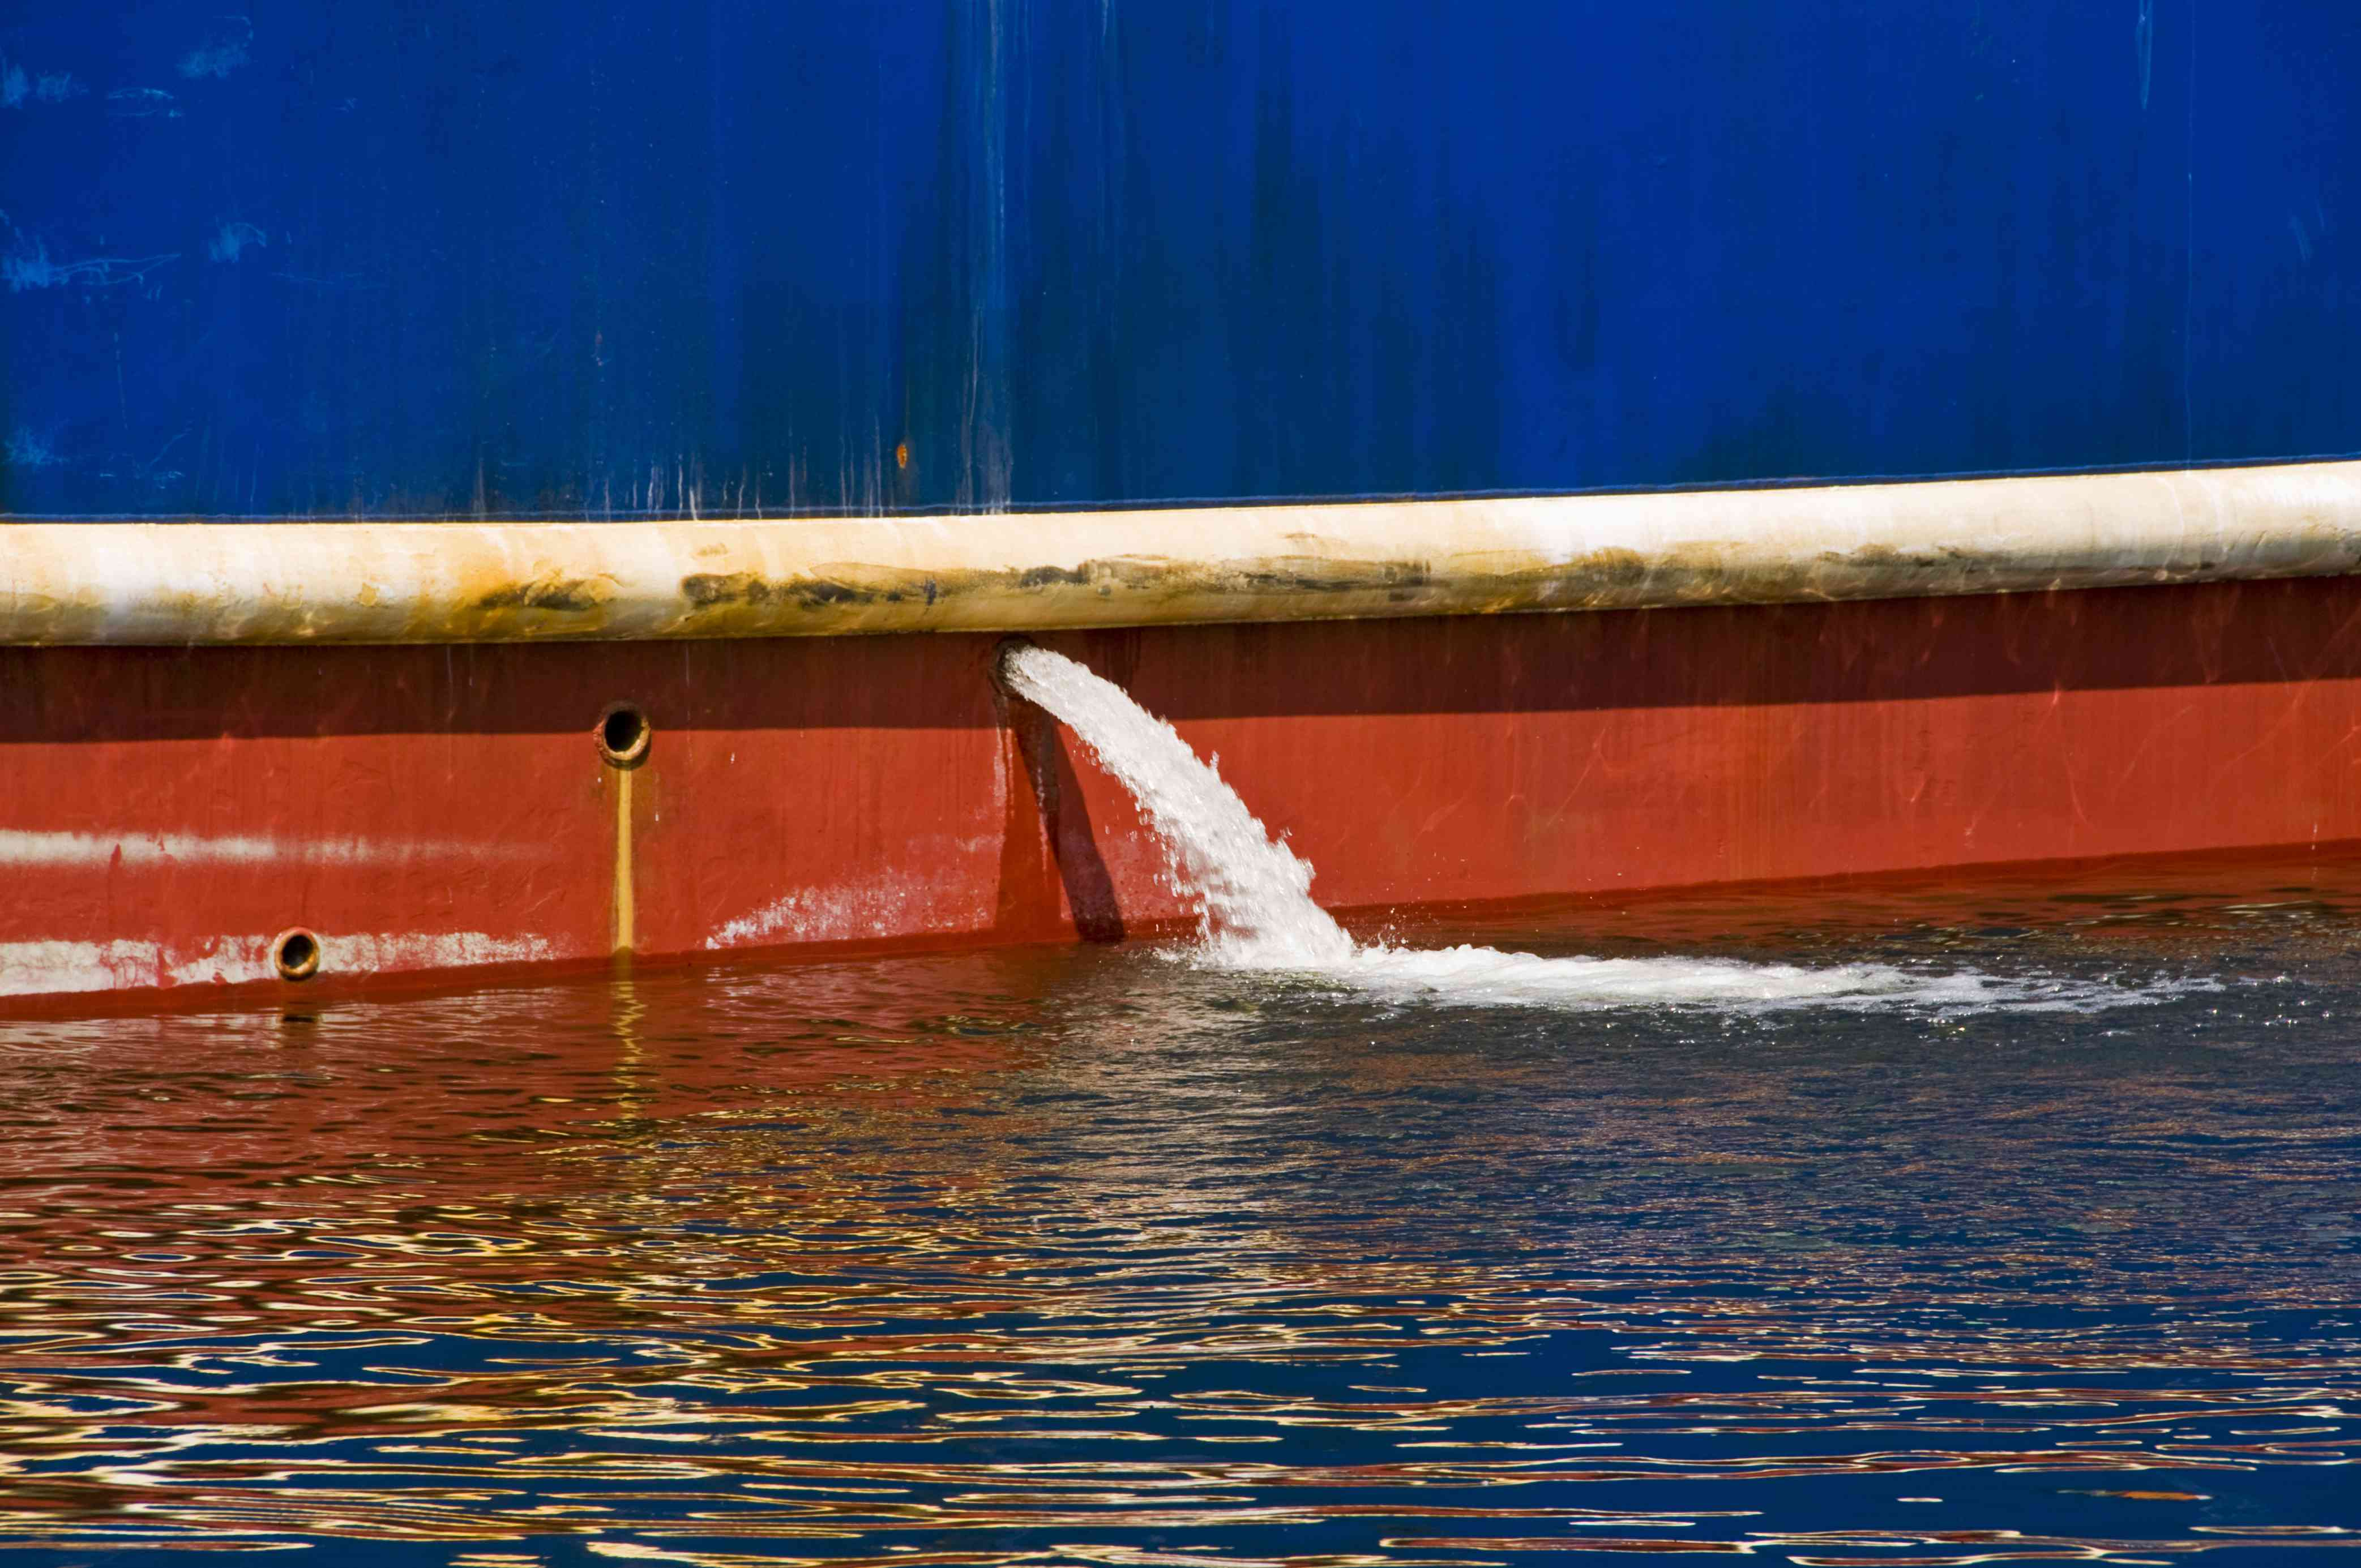 Outflow of ballast water from fishing ship's hull